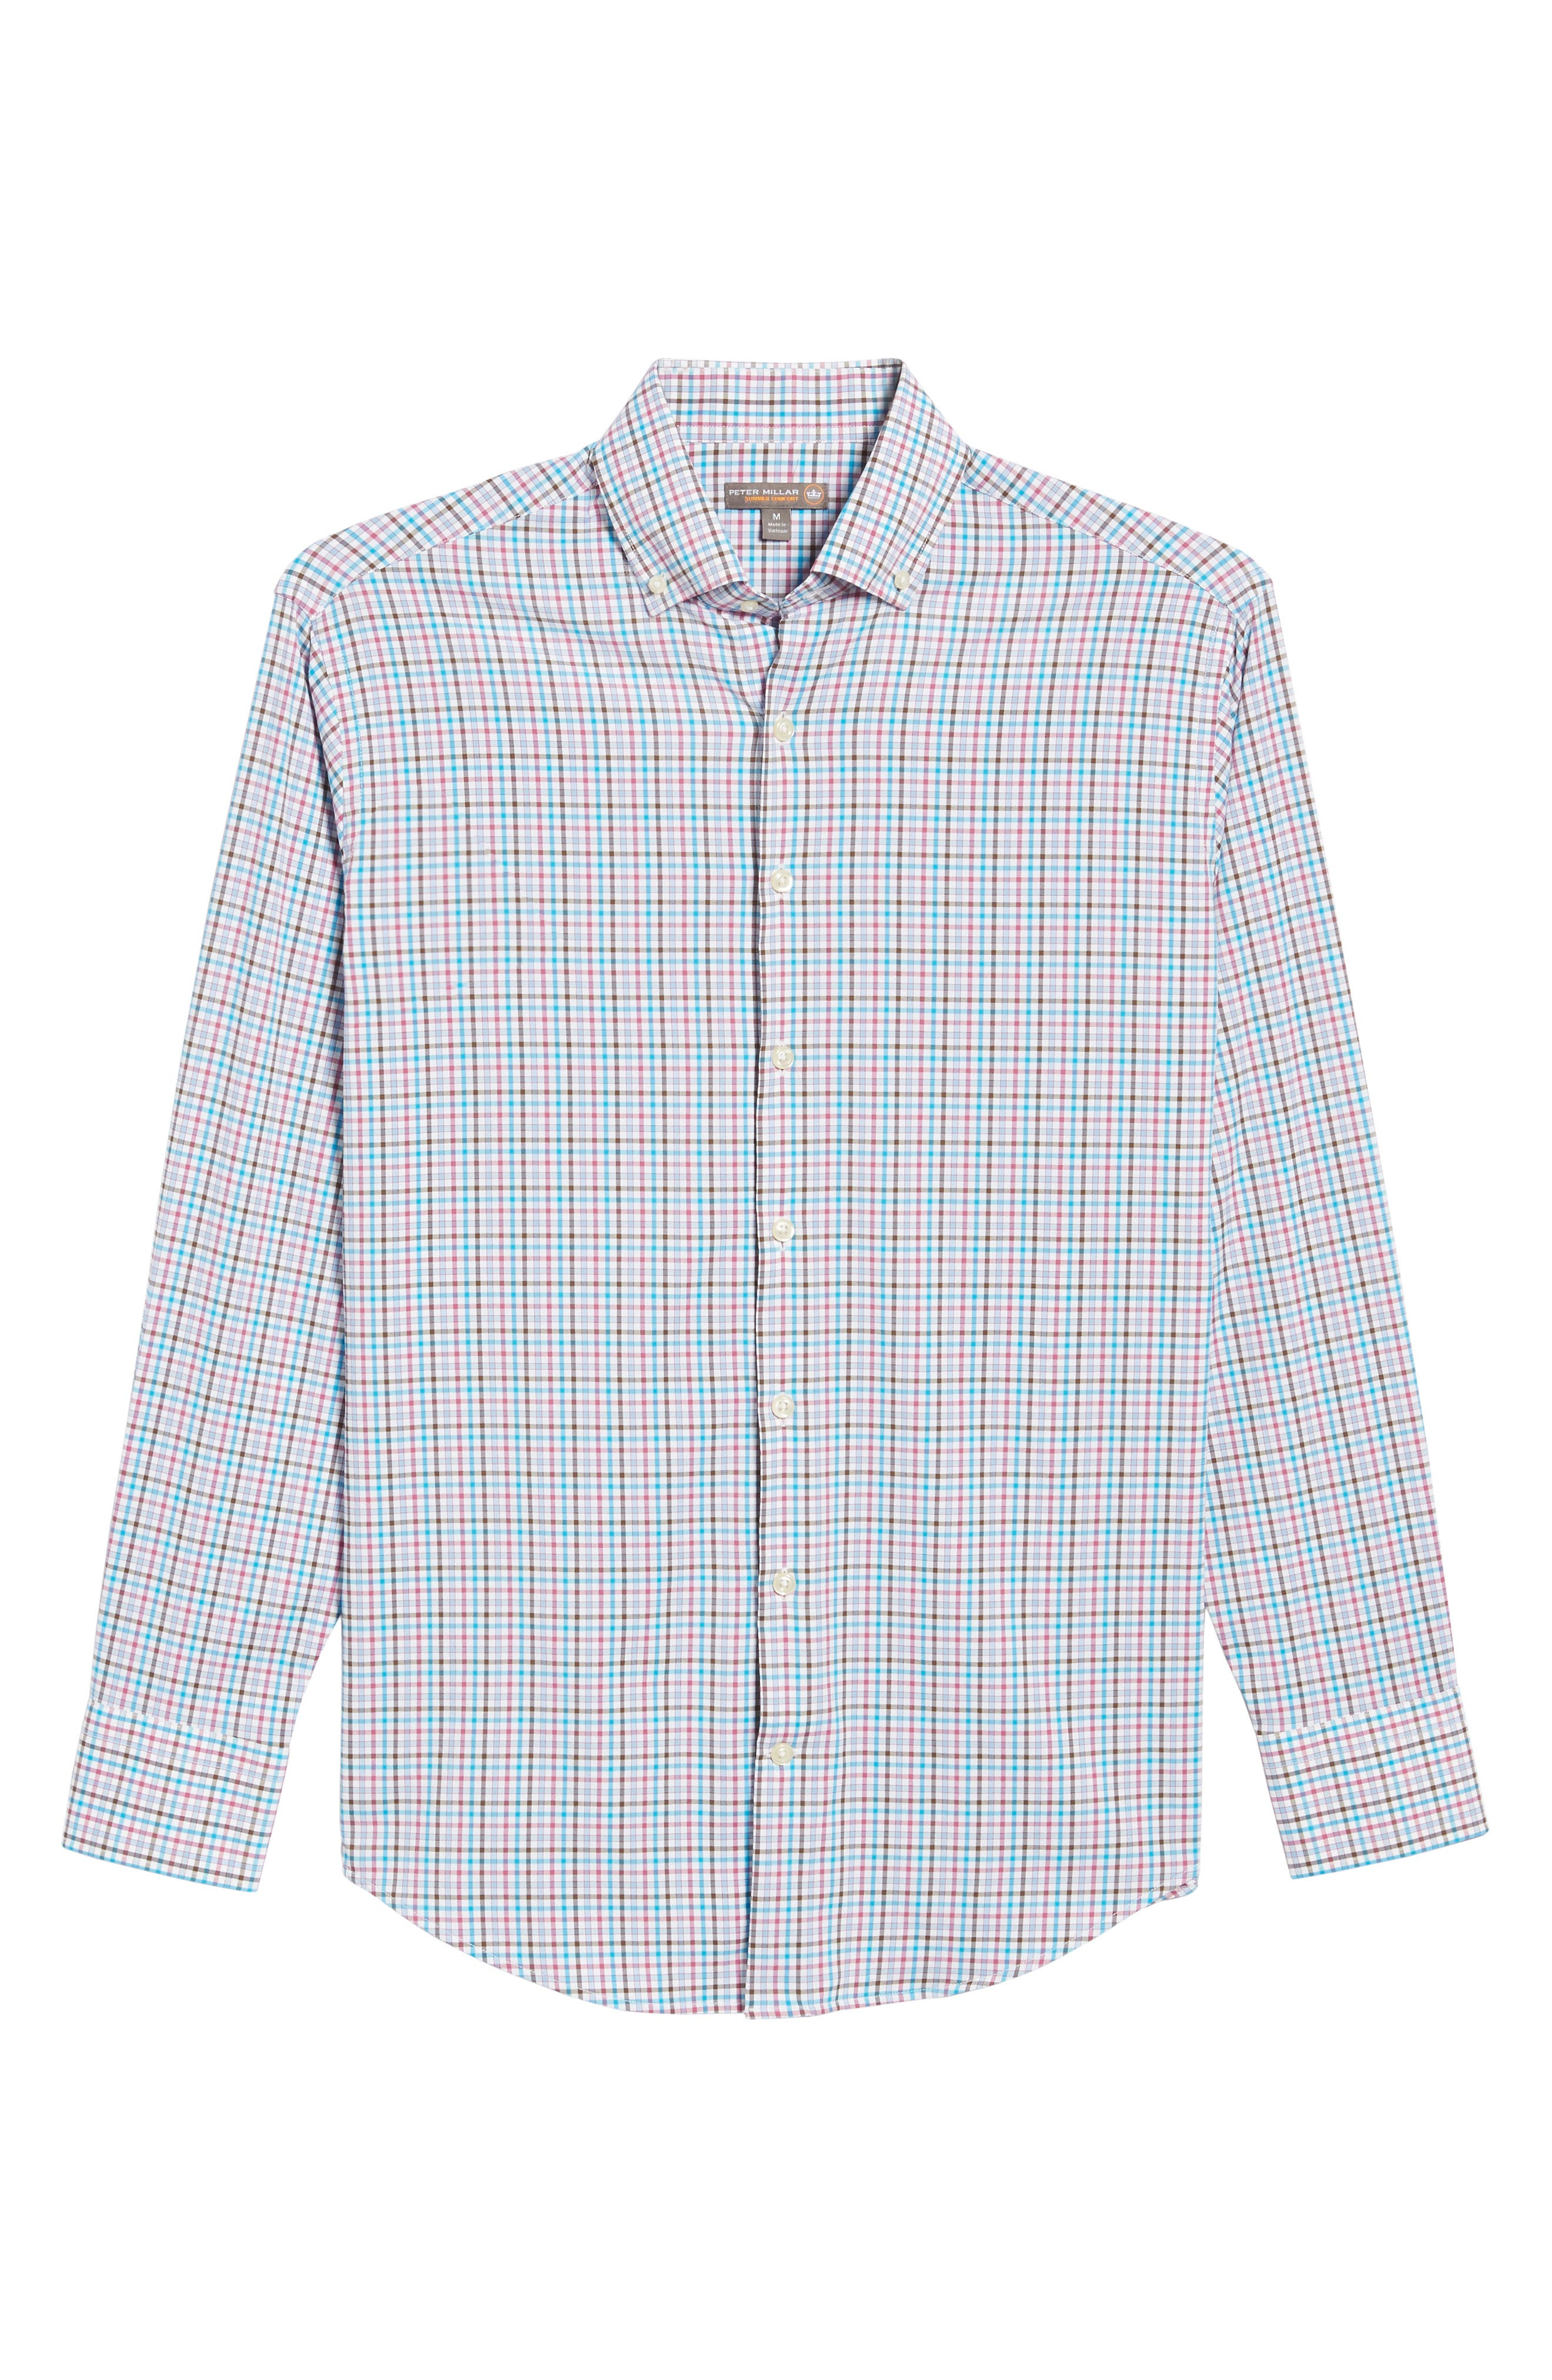 Post Regular Fit Check Performance Sport Shirt,                             Alternate thumbnail 6, color,                             100